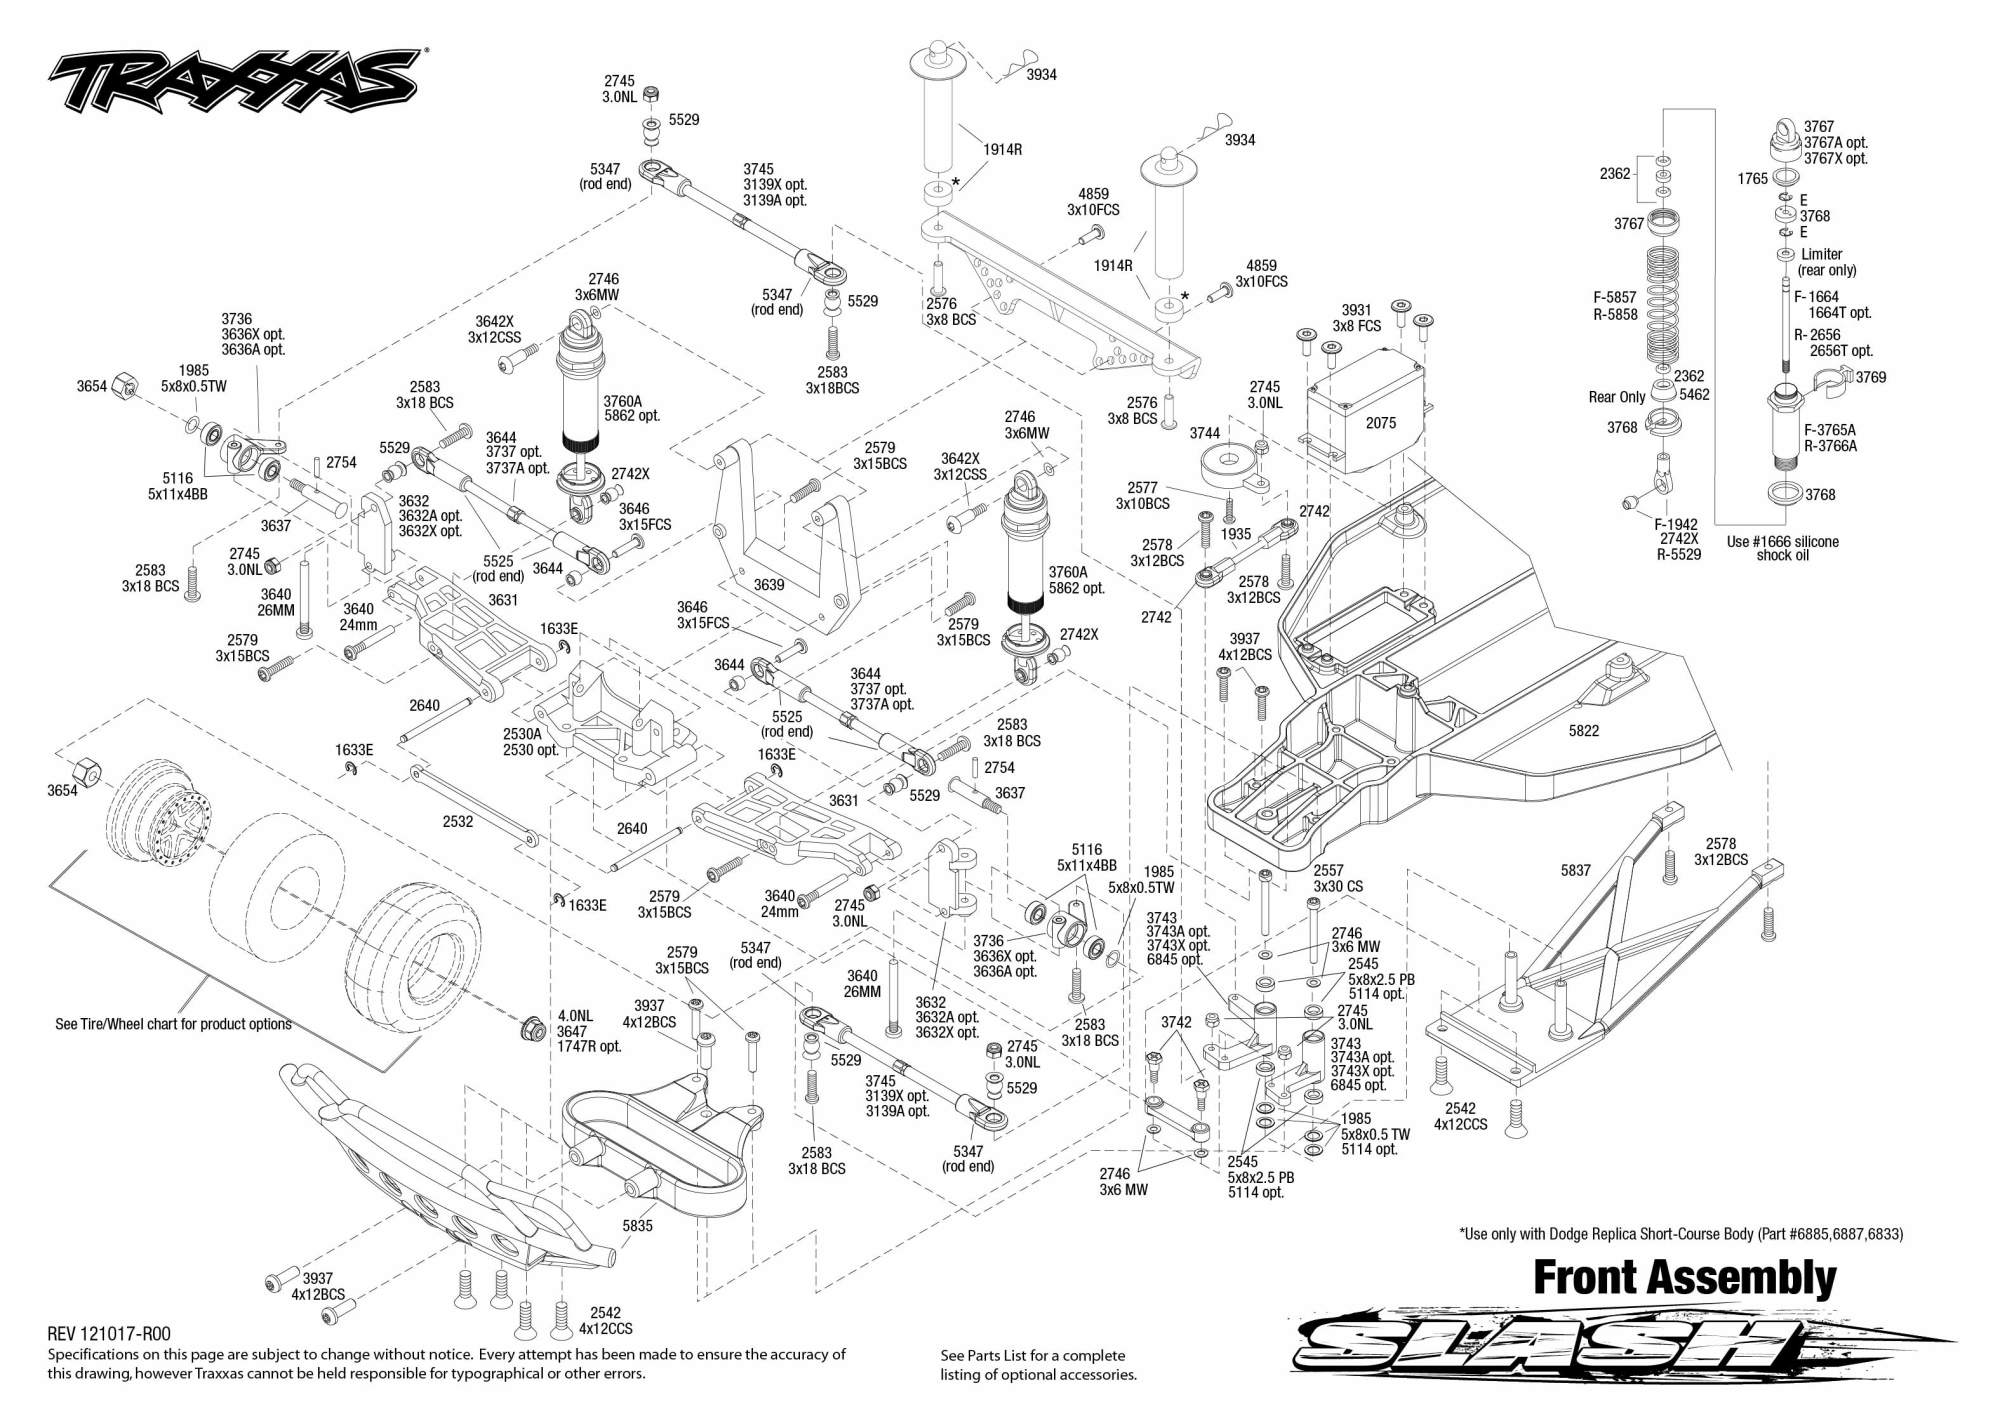 hight resolution of traxxas parts diagram traxxas parts list slash 4x4 traxxas slash steering diagram traxxas slash vxl parts diagram